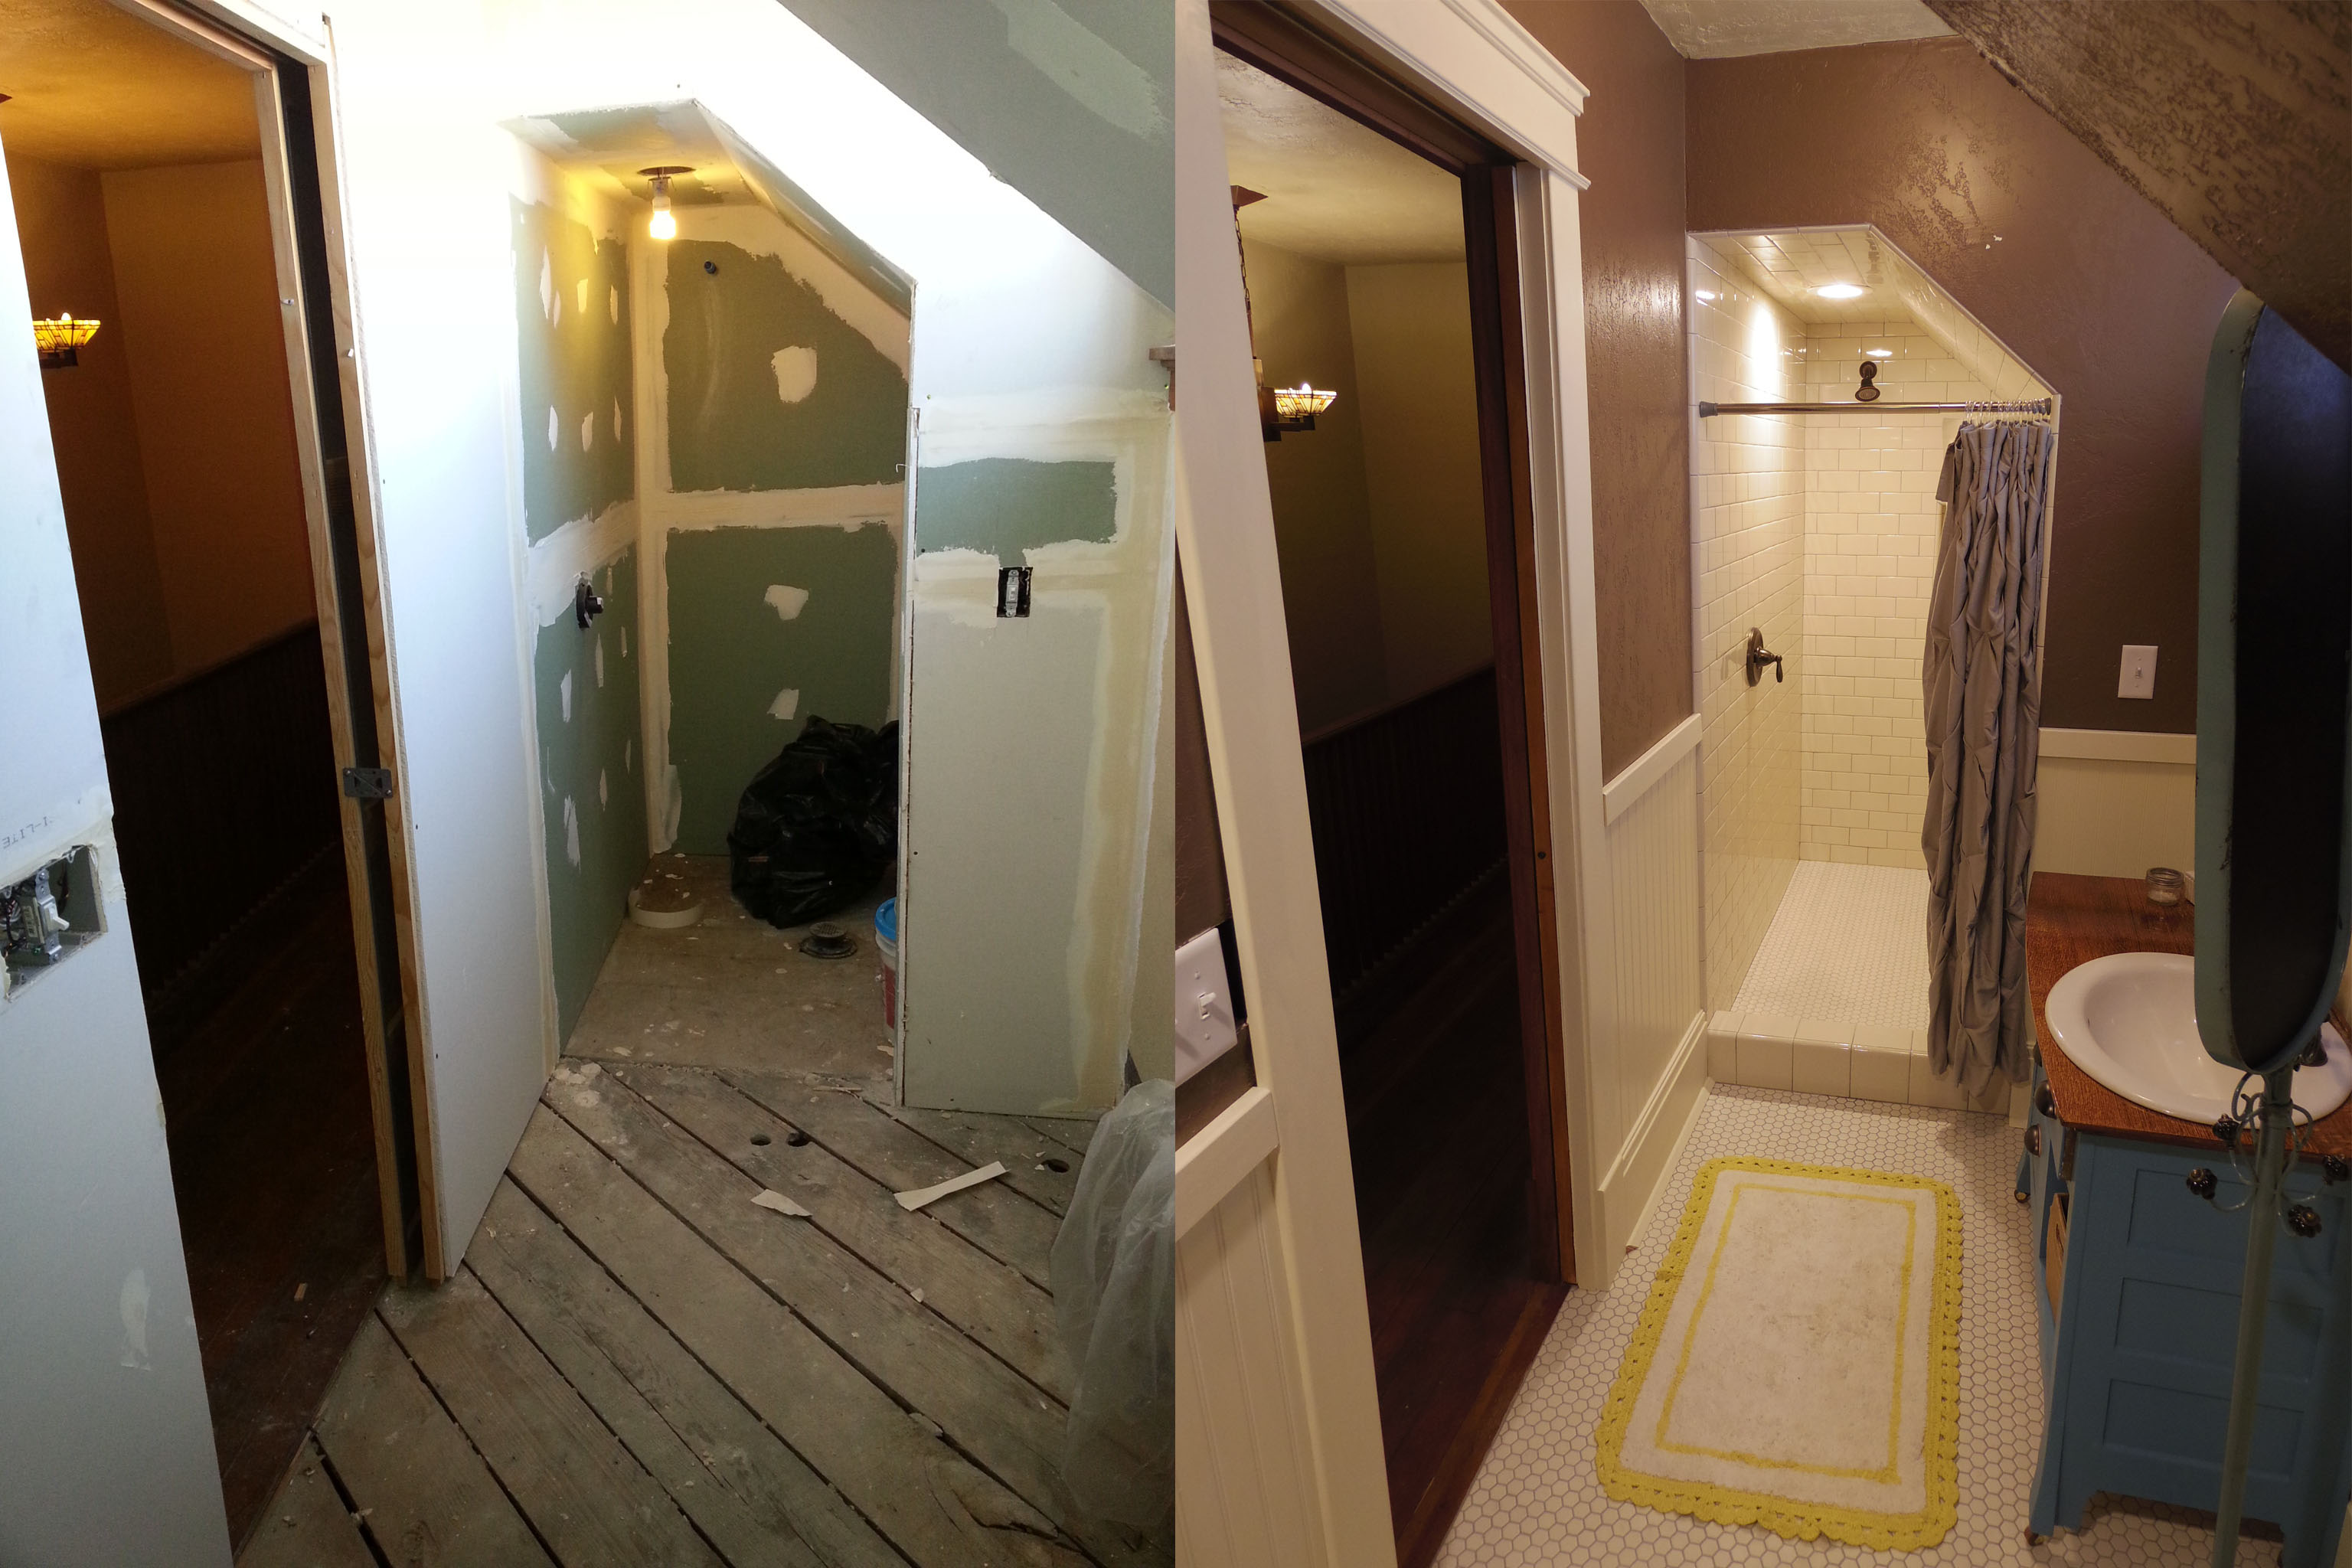 craftsman bathroom before and after 5 - Craftsman Bathroom 2016